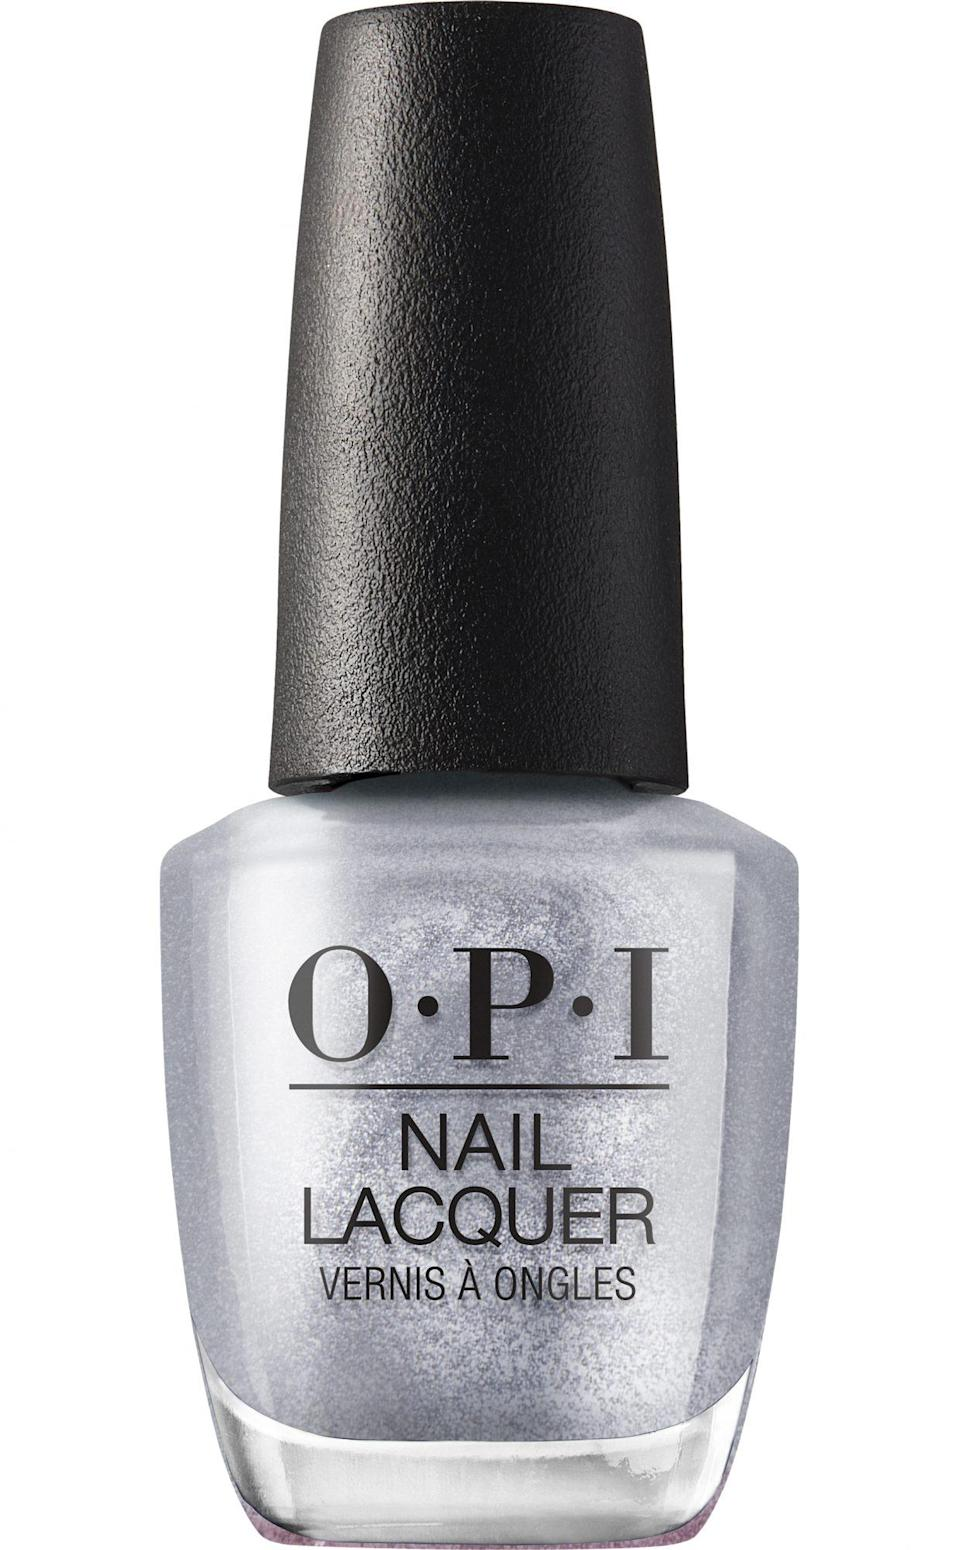 """<p>""""When I am not competing, I love getting my nails done – and usually get gels with fun nail art or something glittery. My favorite salon has the best colors and I am always up to try something new.""""</p> <p><strong>Buy It!</strong> OPI Nail Lacquer in """"Tinsel, Tinsel 'Lil Star,"""" $10.50; <a href=""""https://www.opi.com/shop-products/nail-polish-powders/nail-lacquer/tinsel-tinsel-lil-star"""" rel=""""sponsored noopener"""" target=""""_blank"""" data-ylk=""""slk:opi.com"""" class=""""link rapid-noclick-resp"""">opi.com</a></p>"""